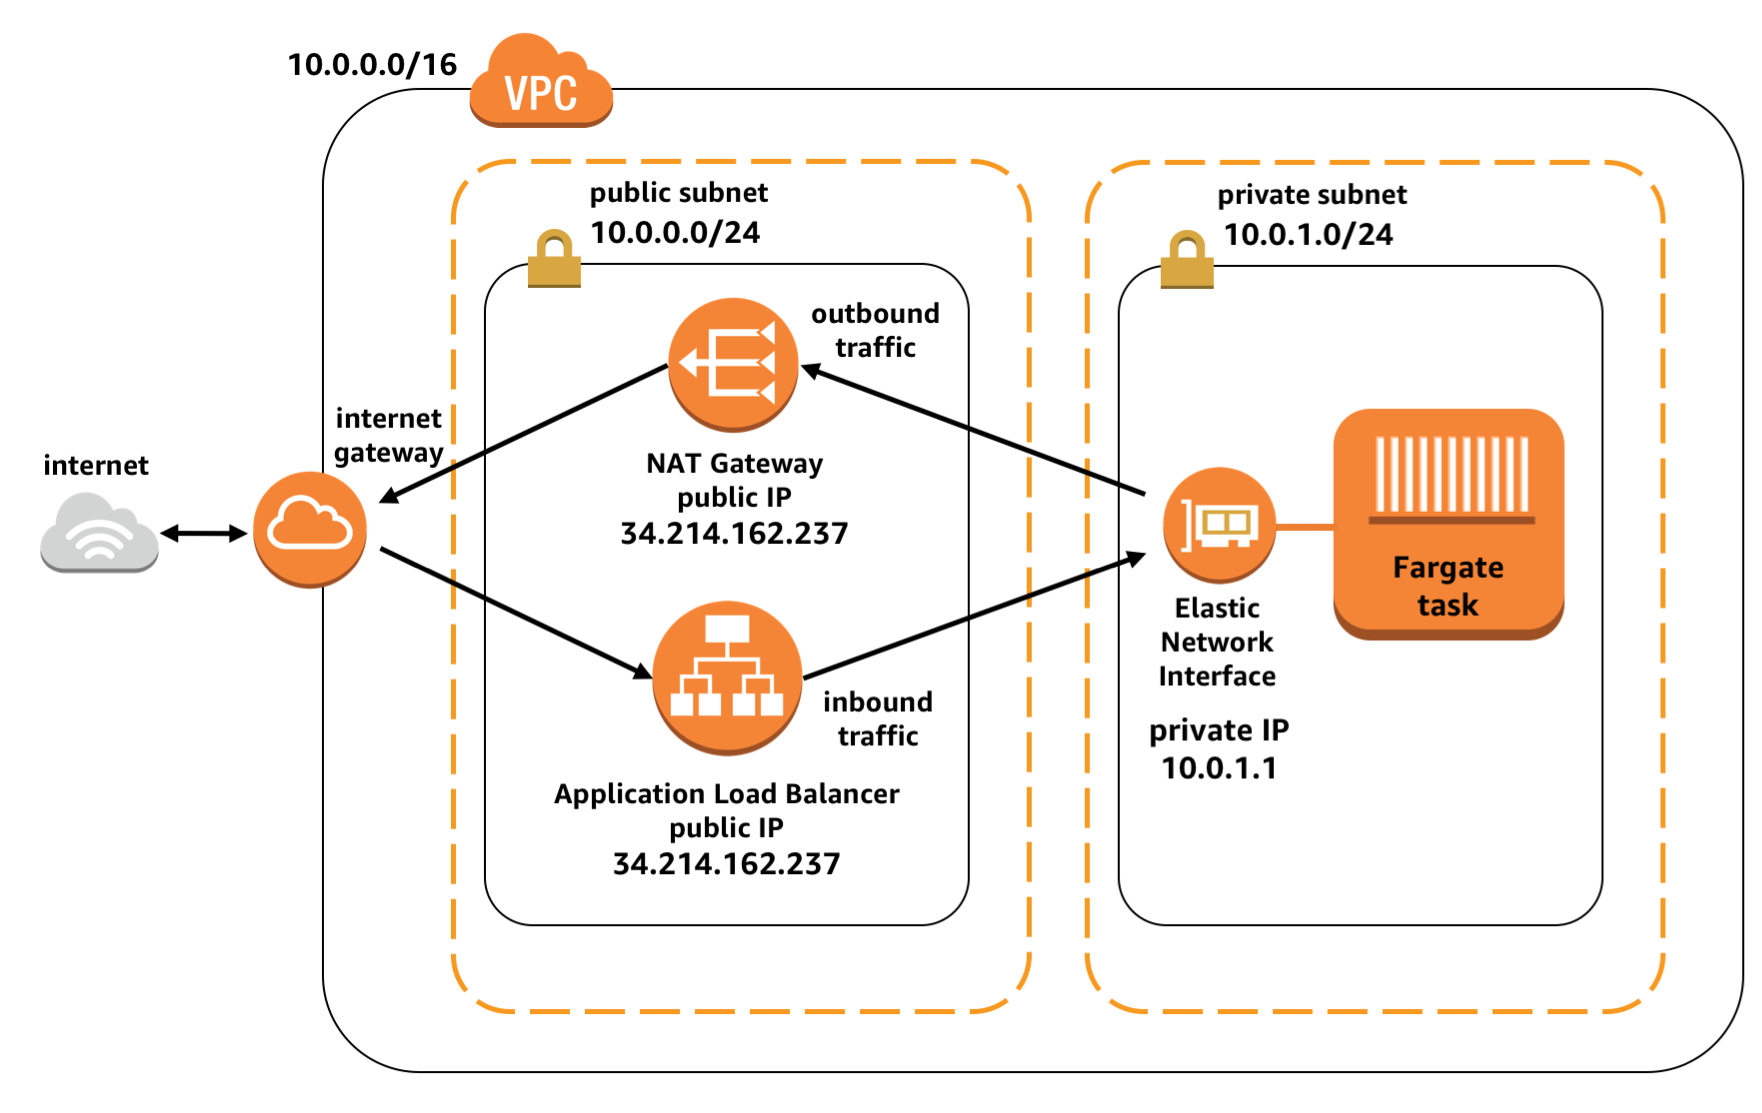 aws network load balancer security group